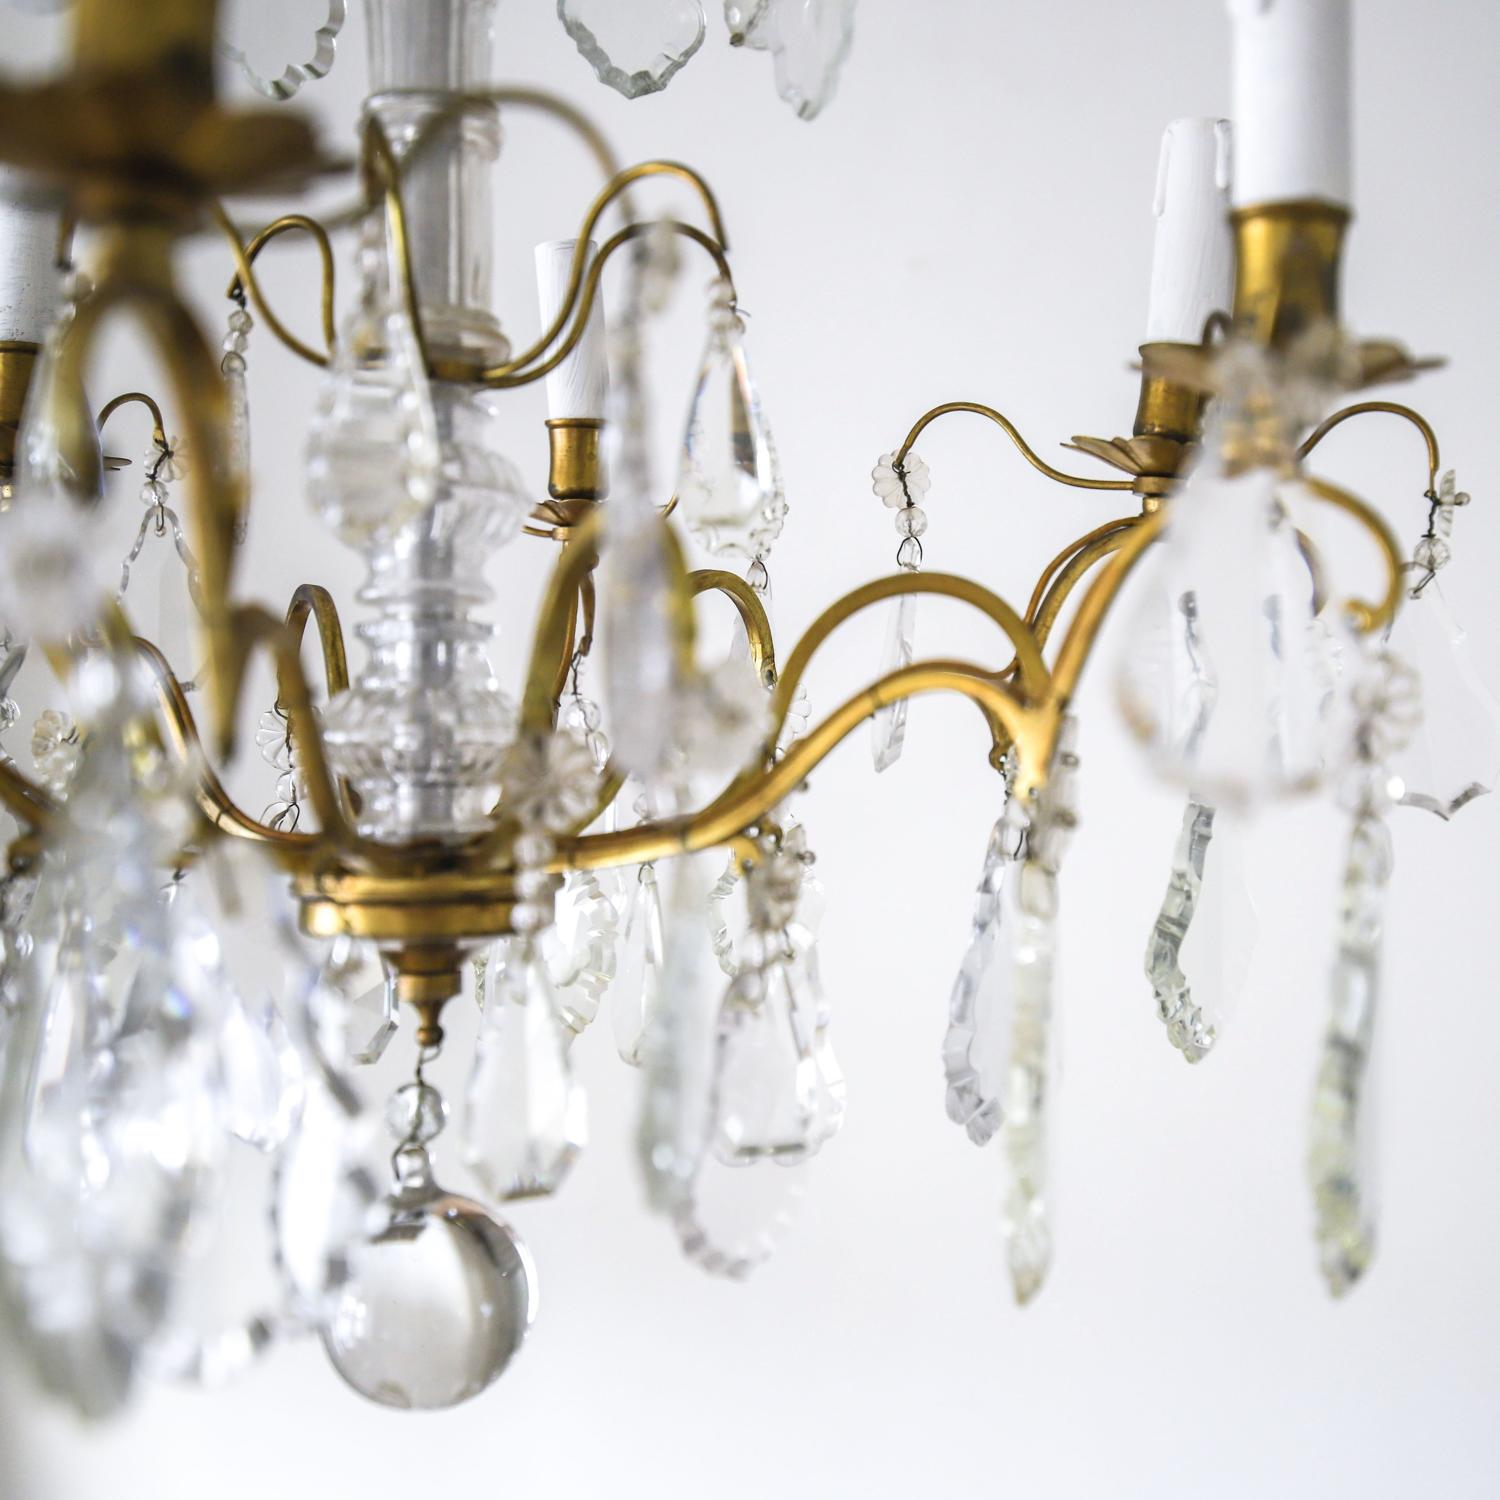 Large vintage French crystal chandelier